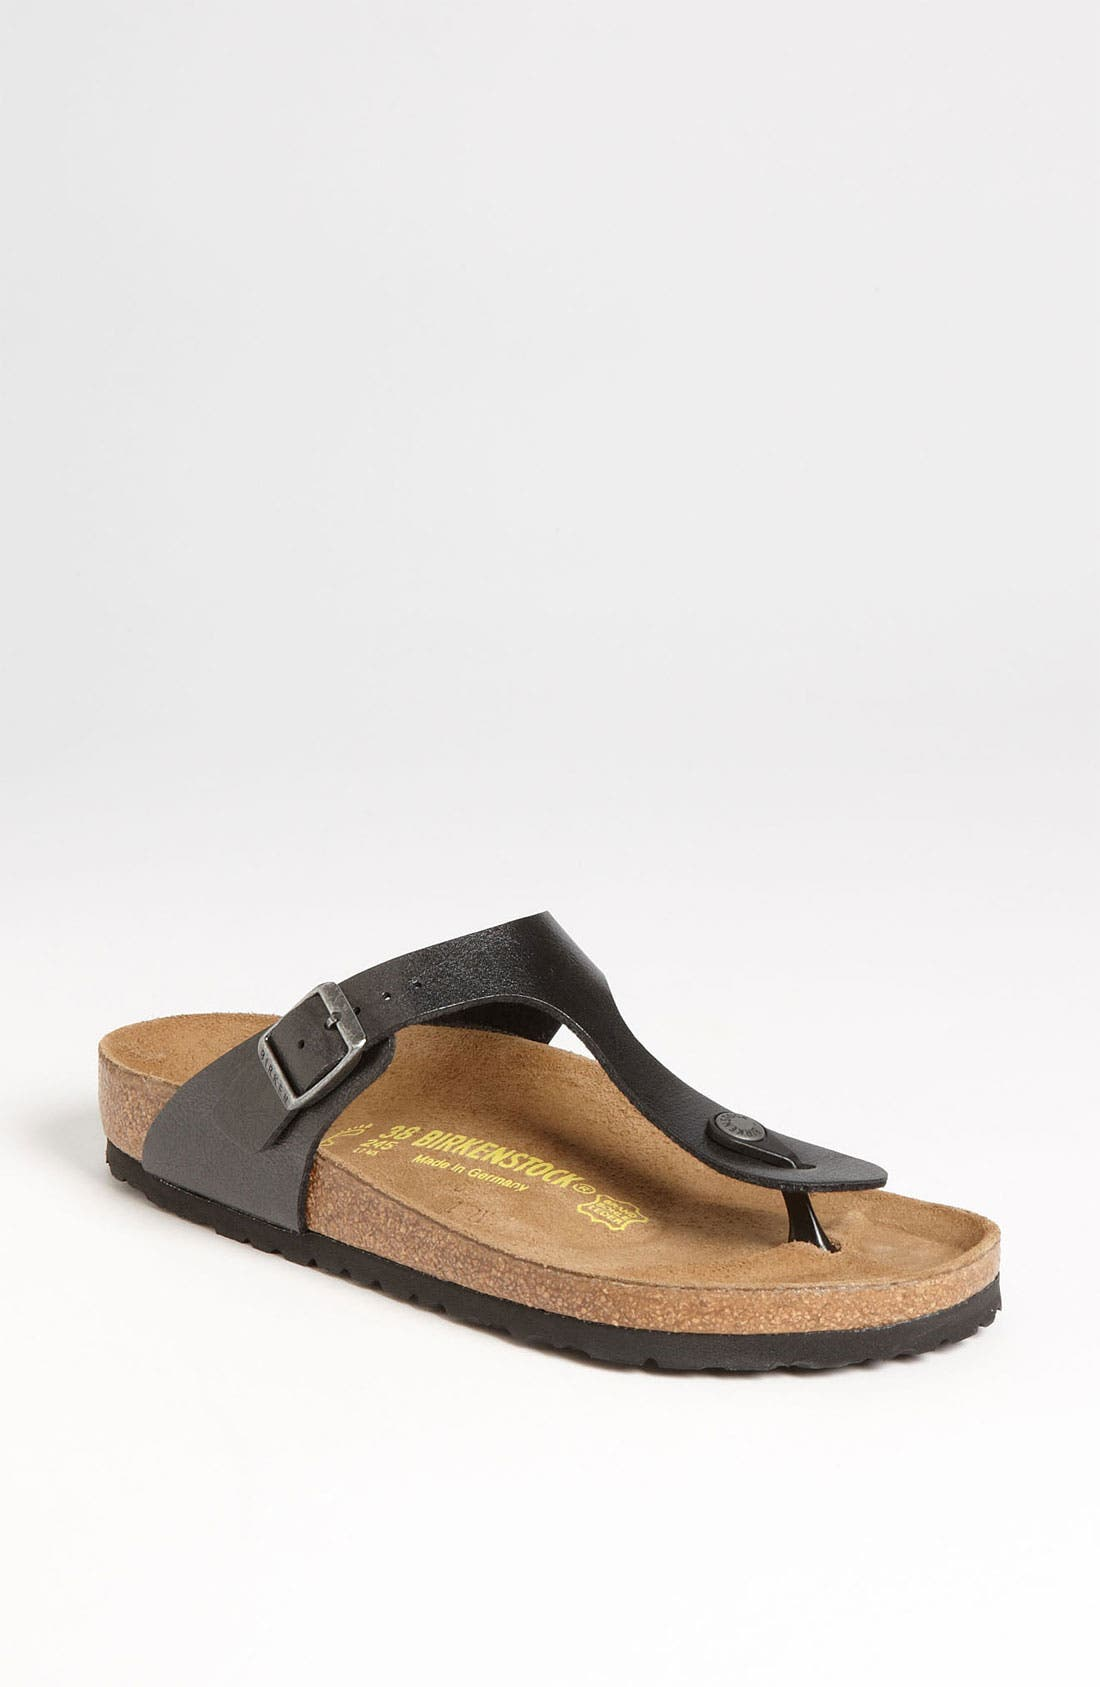 Alternate Image 1 Selected - Birkenstock Gizeh Birko-Flor™ Thong (Women)